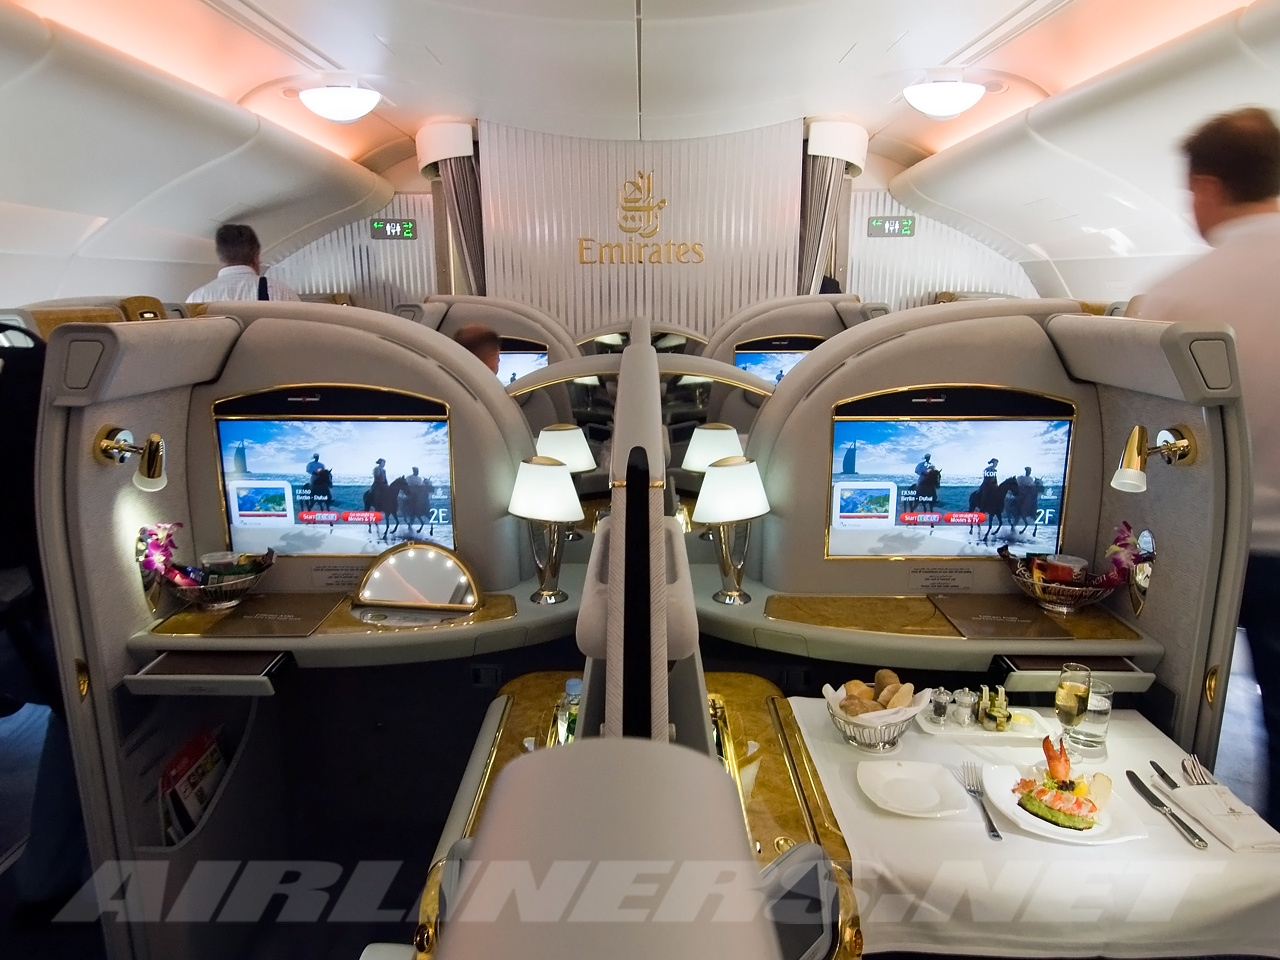 File airbus a380 861 emirates wikimedia for Airbus a380 emirates interior